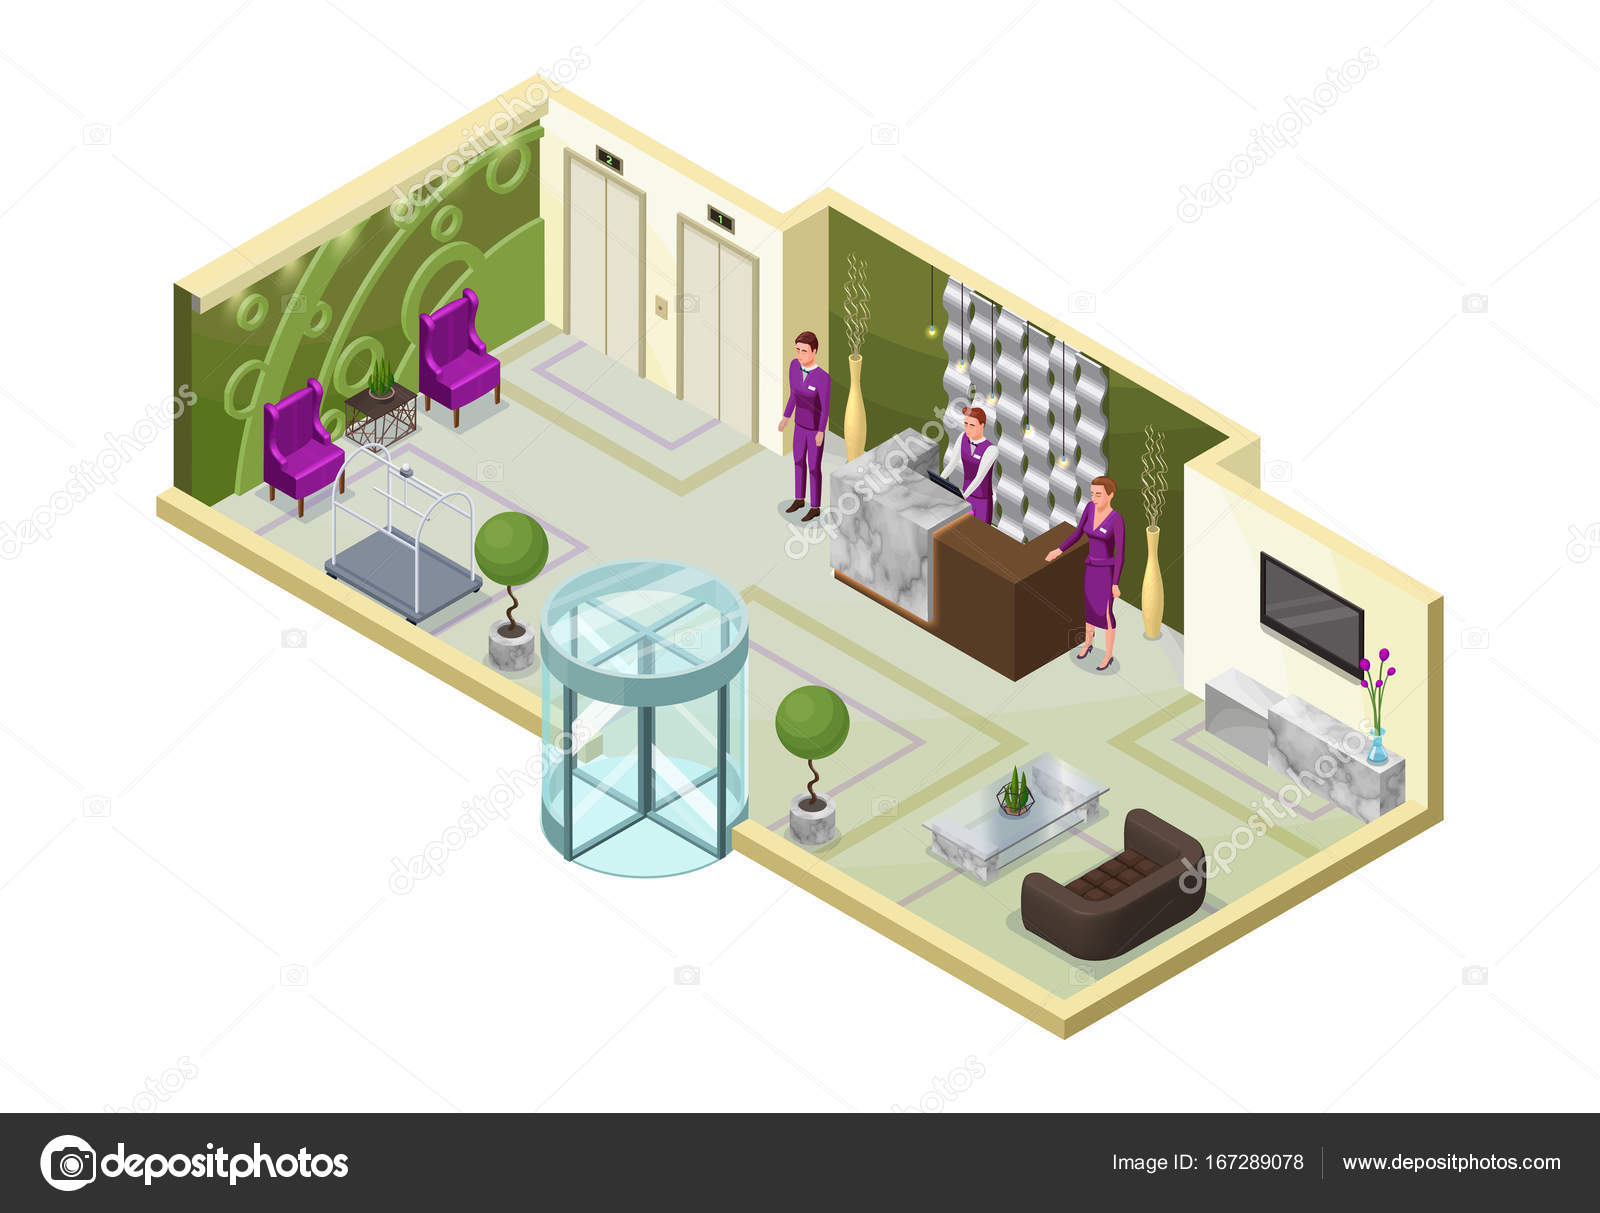 Hotel Isometric 3d Ilration With People Lobby Reception Desk Marble Furniture Trendy